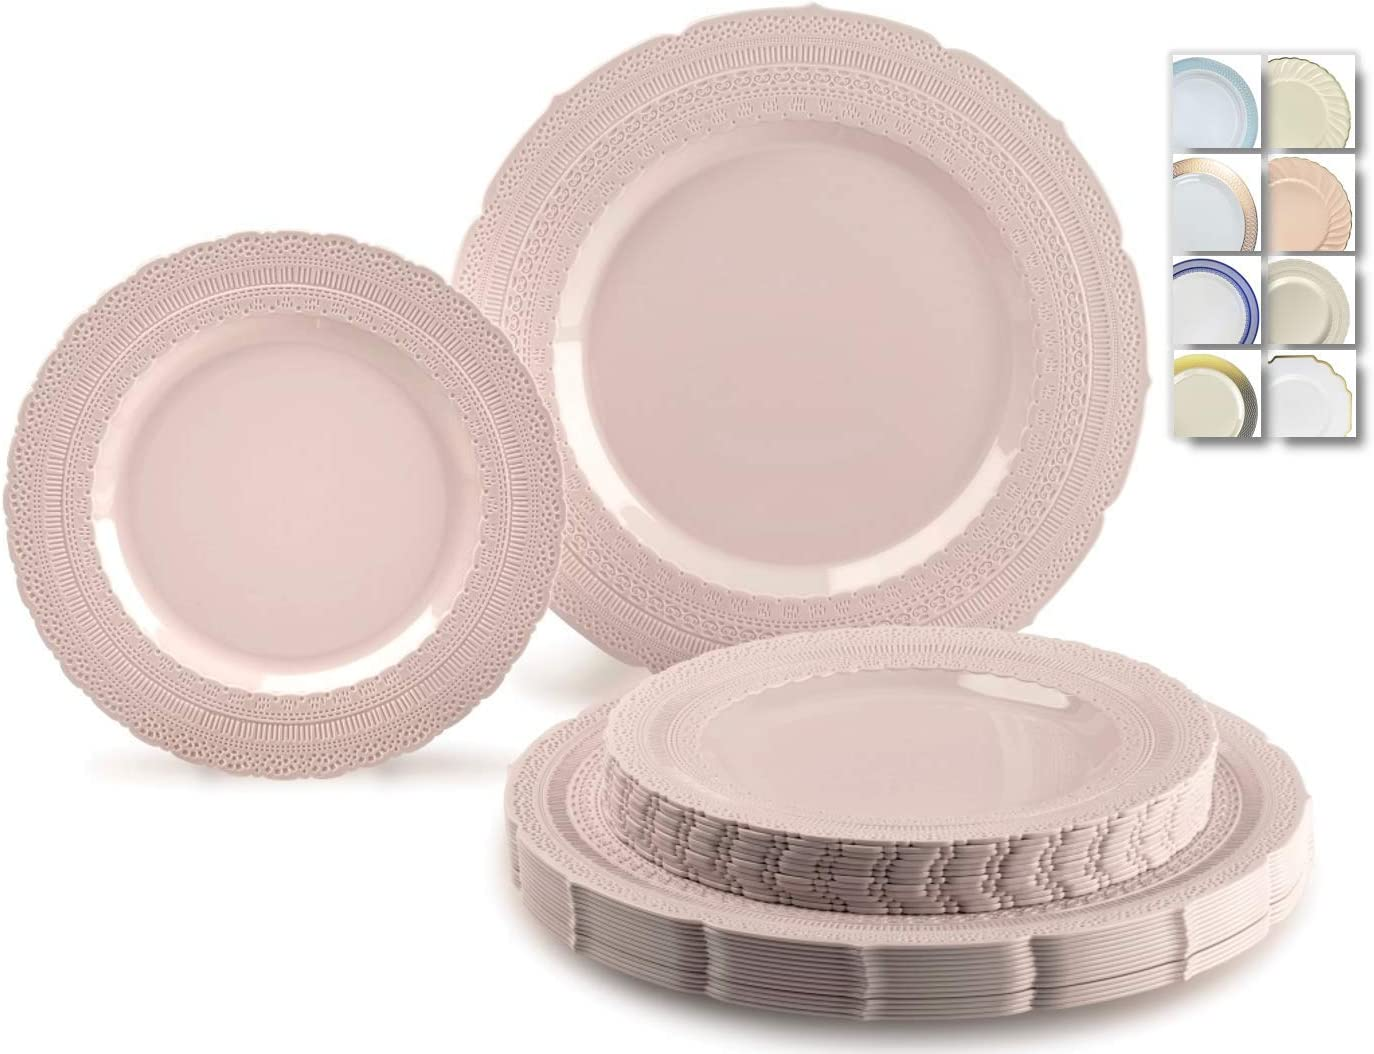 OCCASIONS 120 Plates Pack,(60 Guests) Extra Heavyweight Vintage Wedding Disposable/Reusable Plastic Plates 60x11'' Dinner+60 x 8.25'' Salad/Dessert Plate (Chateau Blush Pink) 61bTSxGgWDL